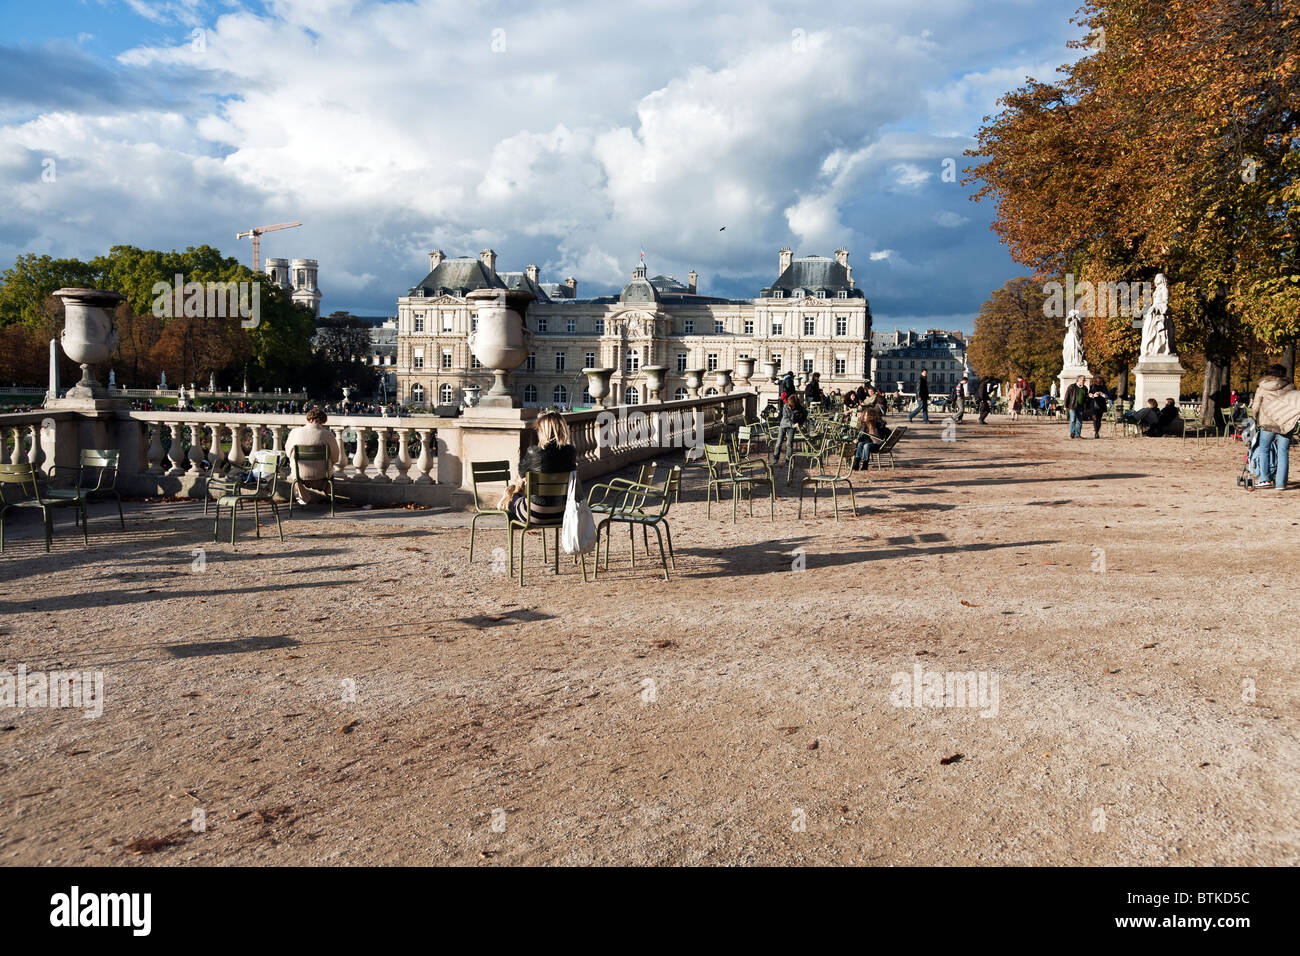 people enjoy beautiful autumn afternoon on terrace of Luxembourg Gardens with statuary urns & balustrade overlooking - Stock Image